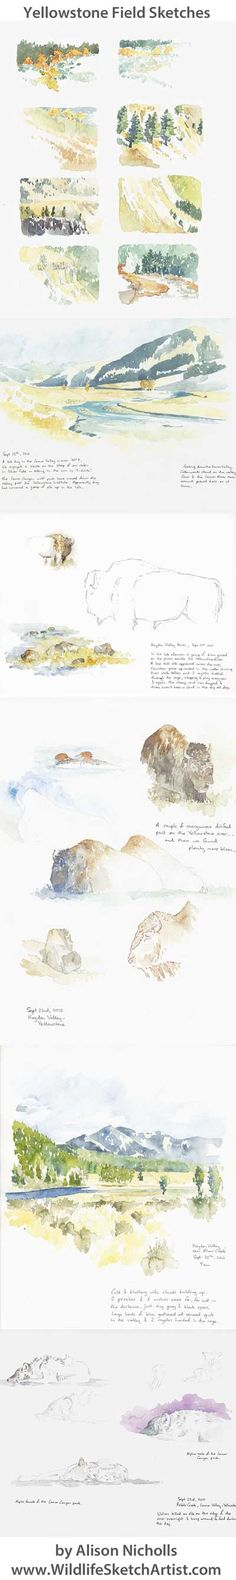 Yellowstone Field Sketches by Alison Nicholls